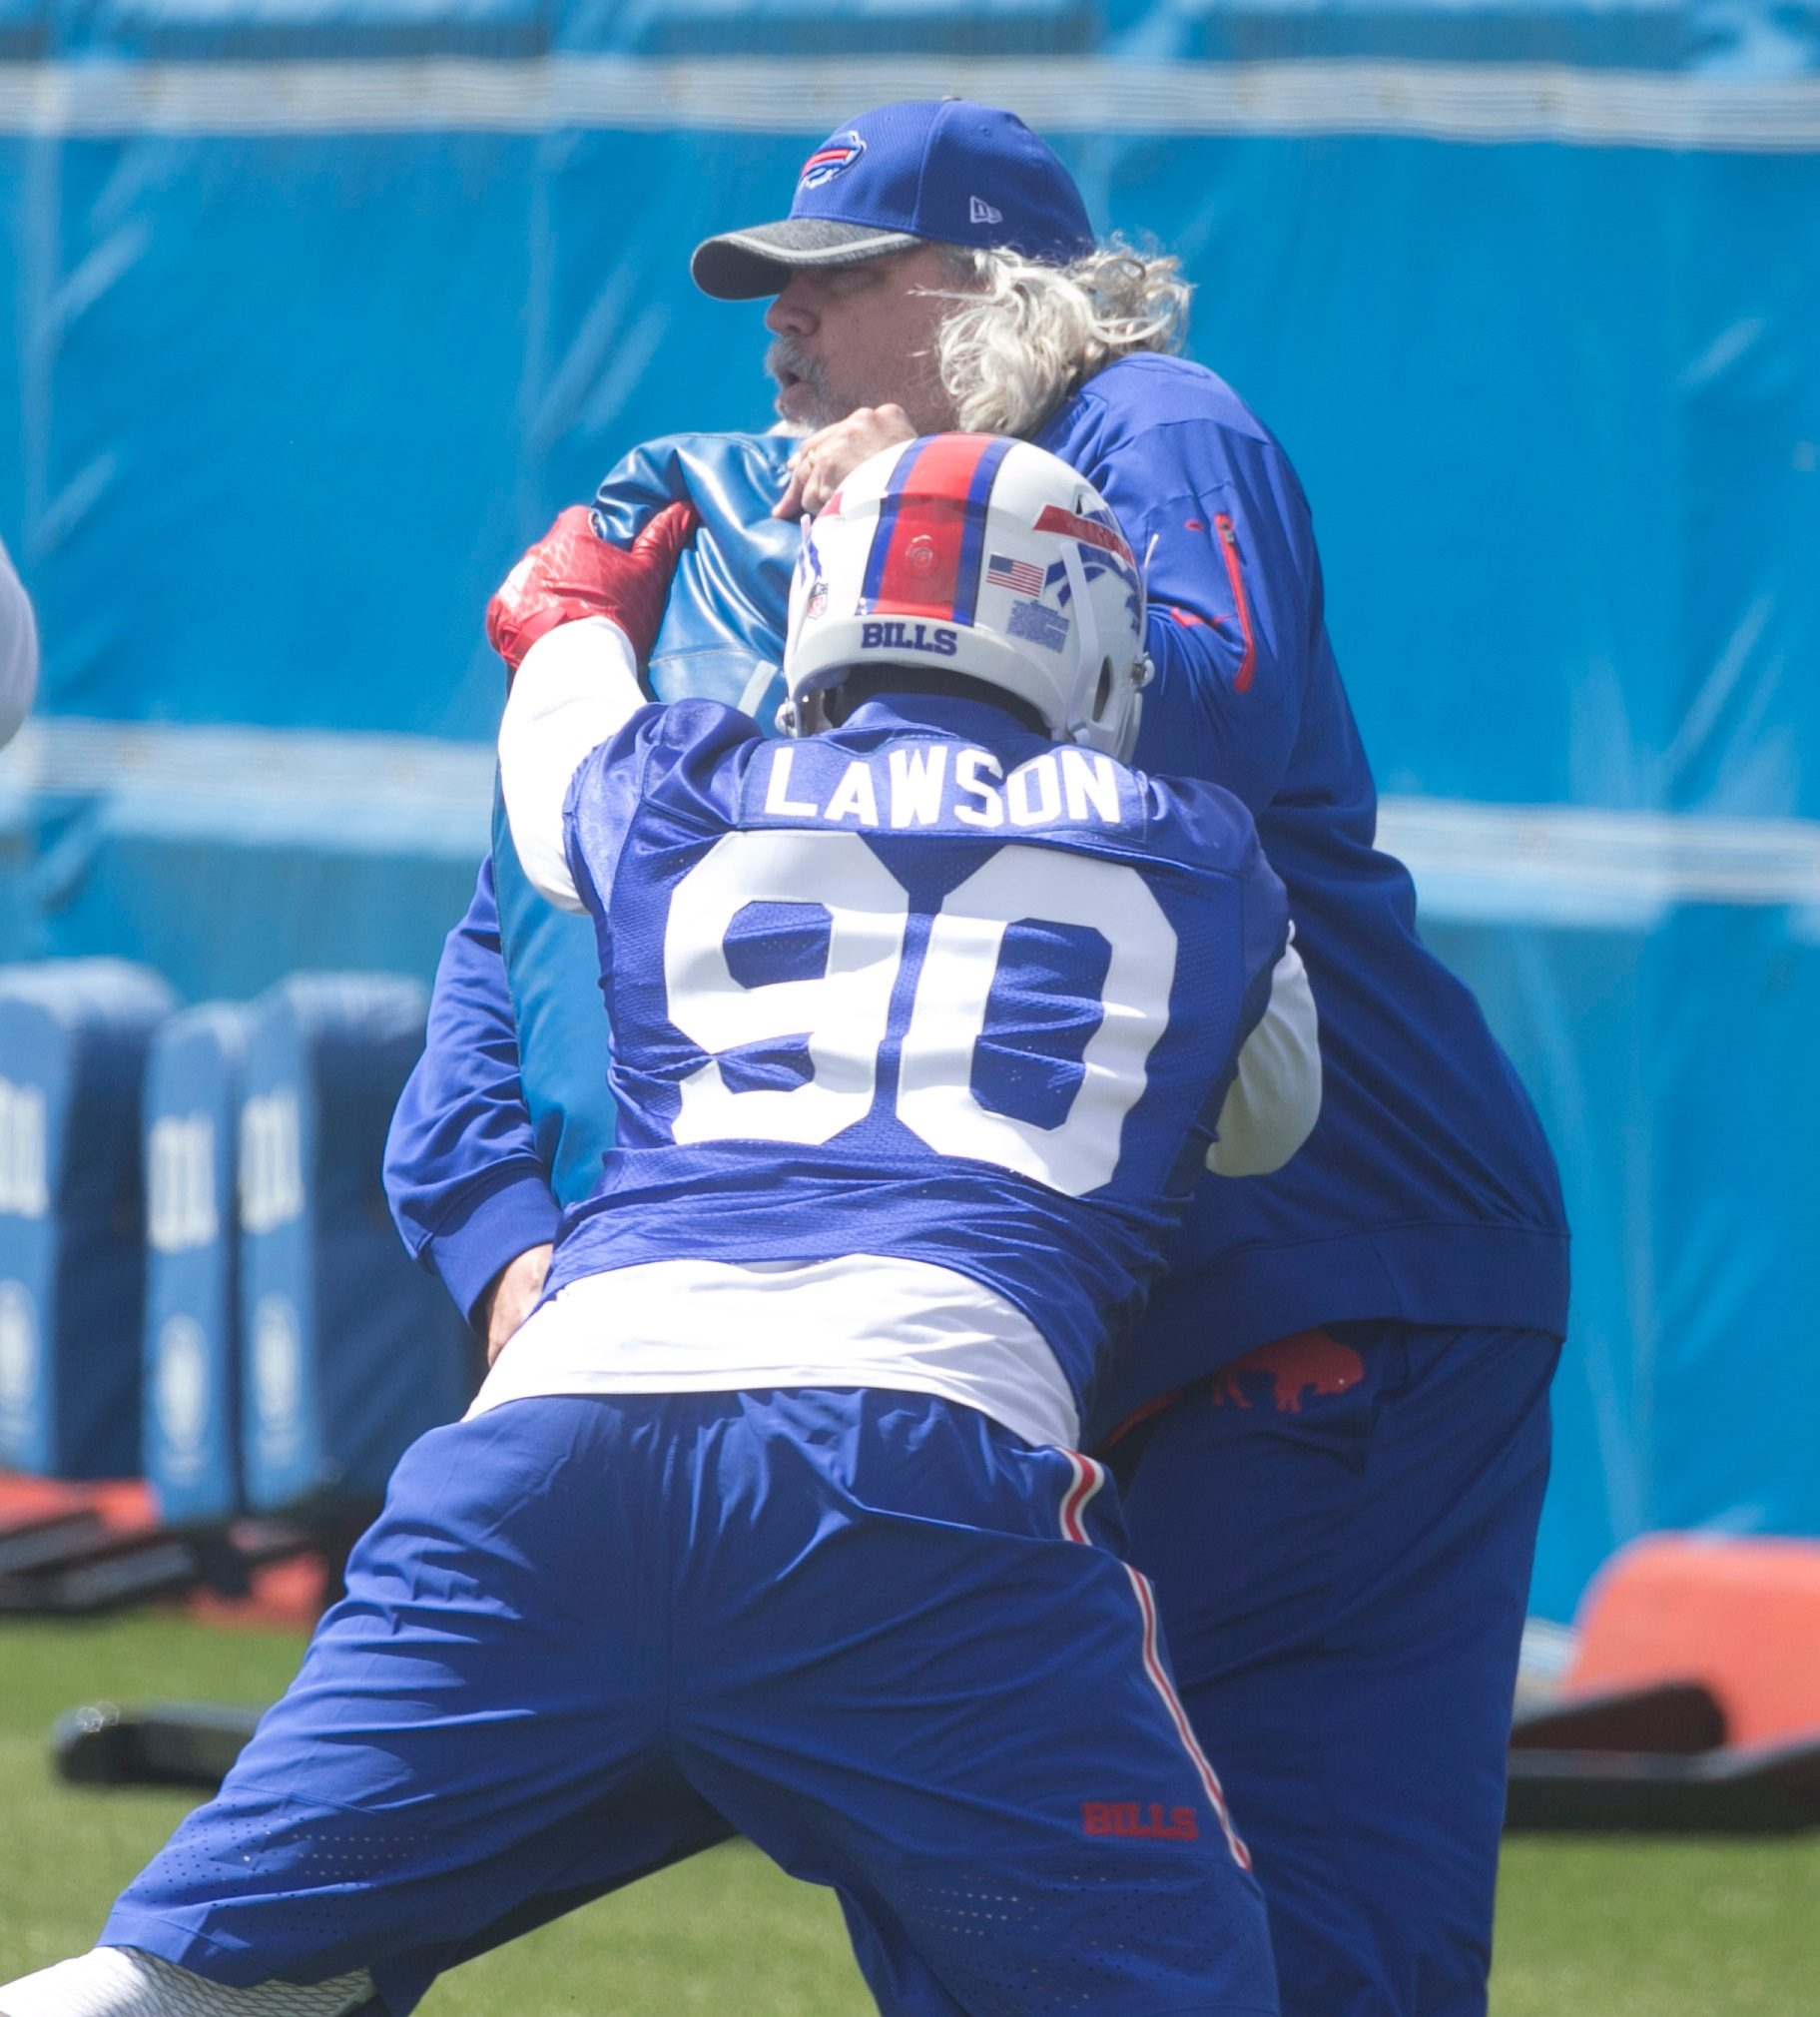 Buffalo Bills Rob Ryan,right, Assistant Head Coach/Defense is driven backward on a block by Defensive End Shaq Lawson (90),  at Bills rookie camp at the grass practice field, in Orchard Park, N.Y., on Friday May 6, 2016. (John Hickey/Buffalo News)